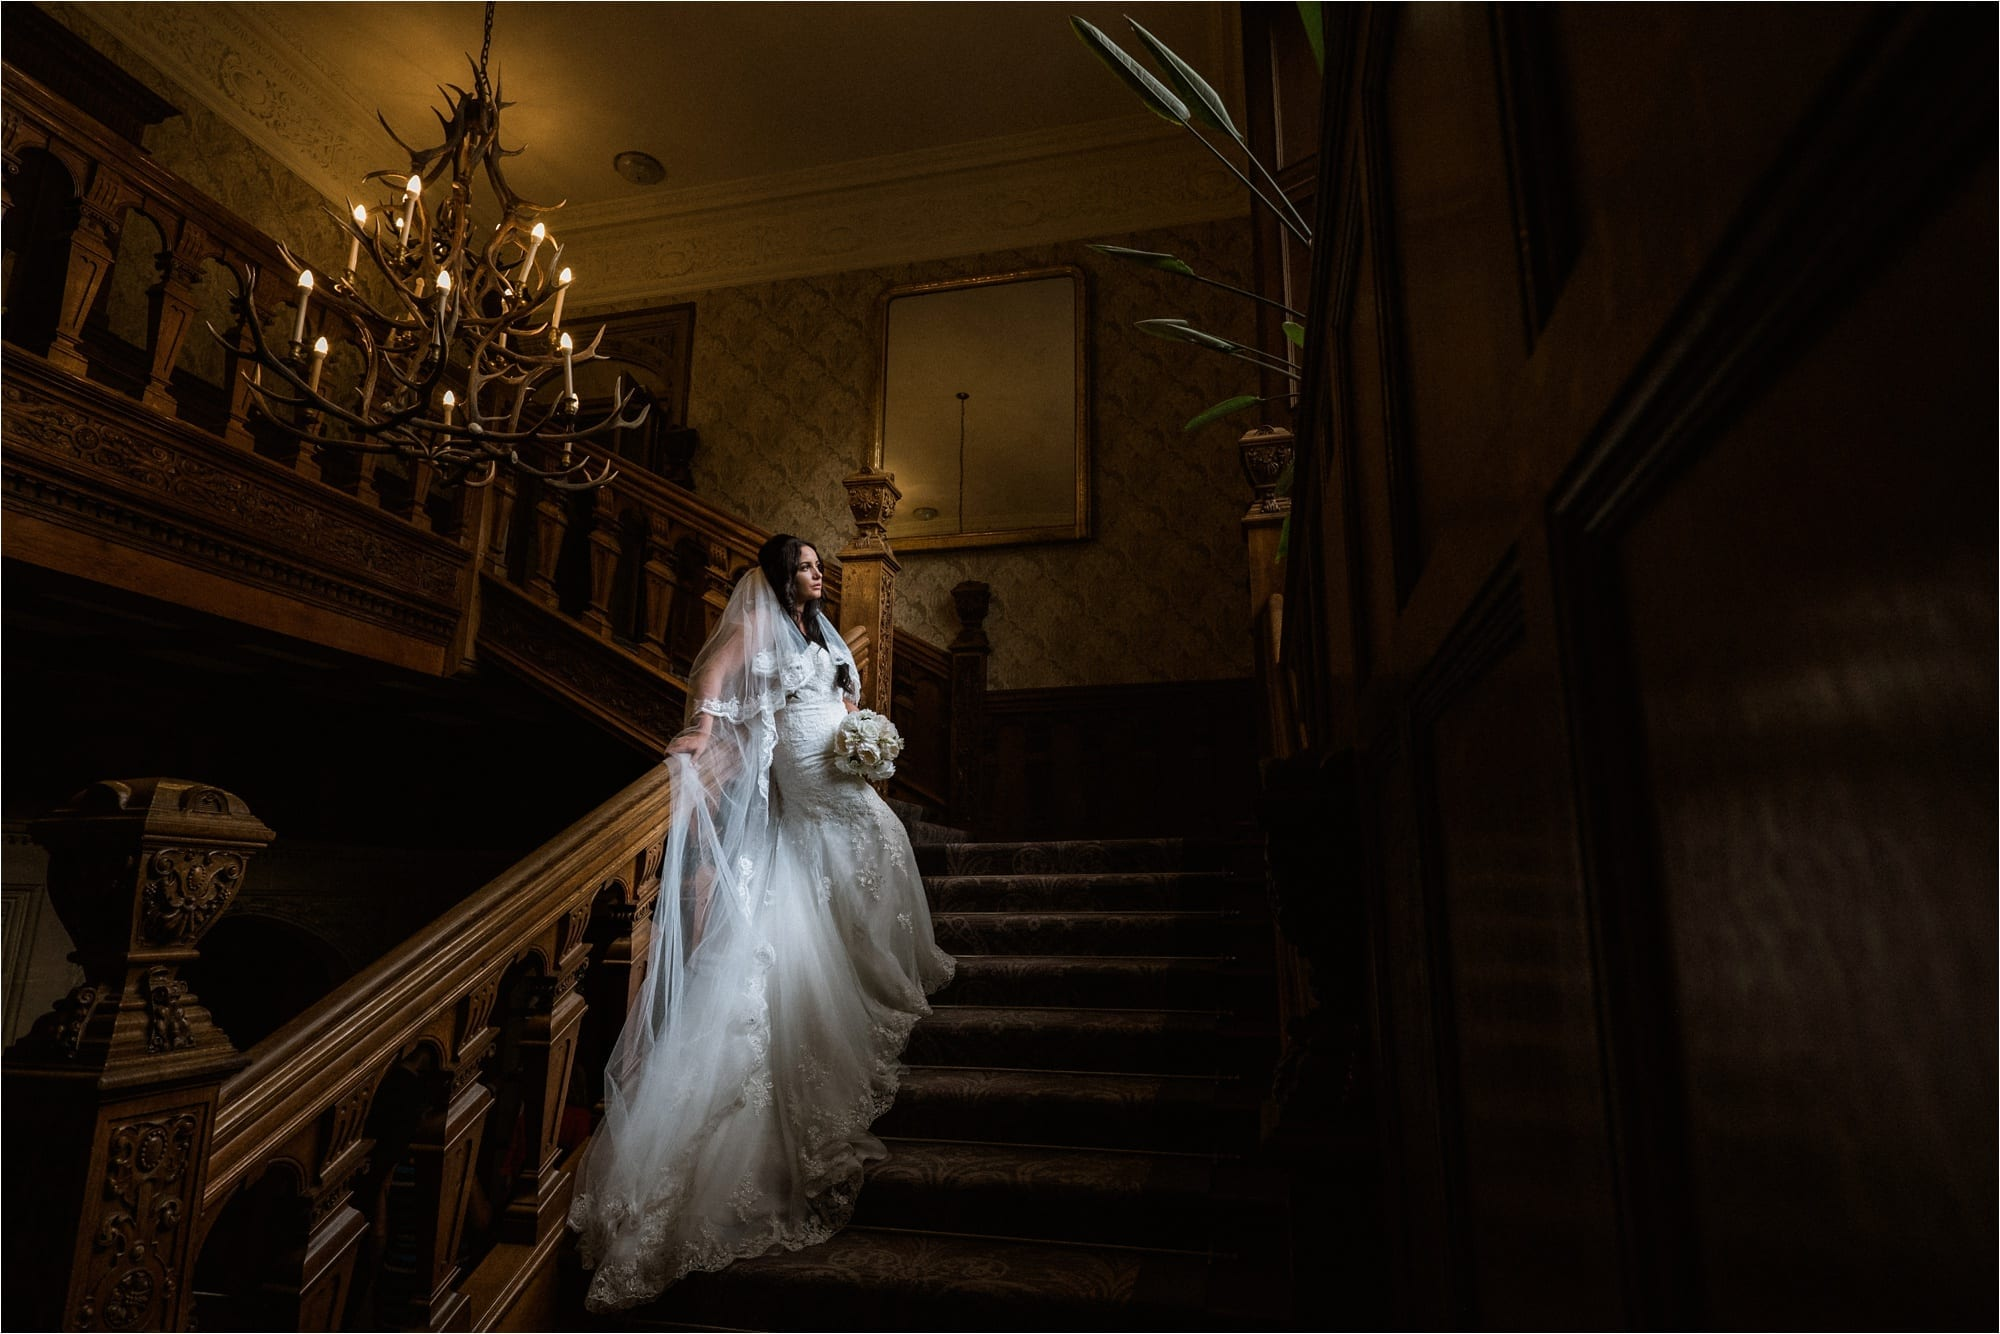 Wedding photography at bovey castle